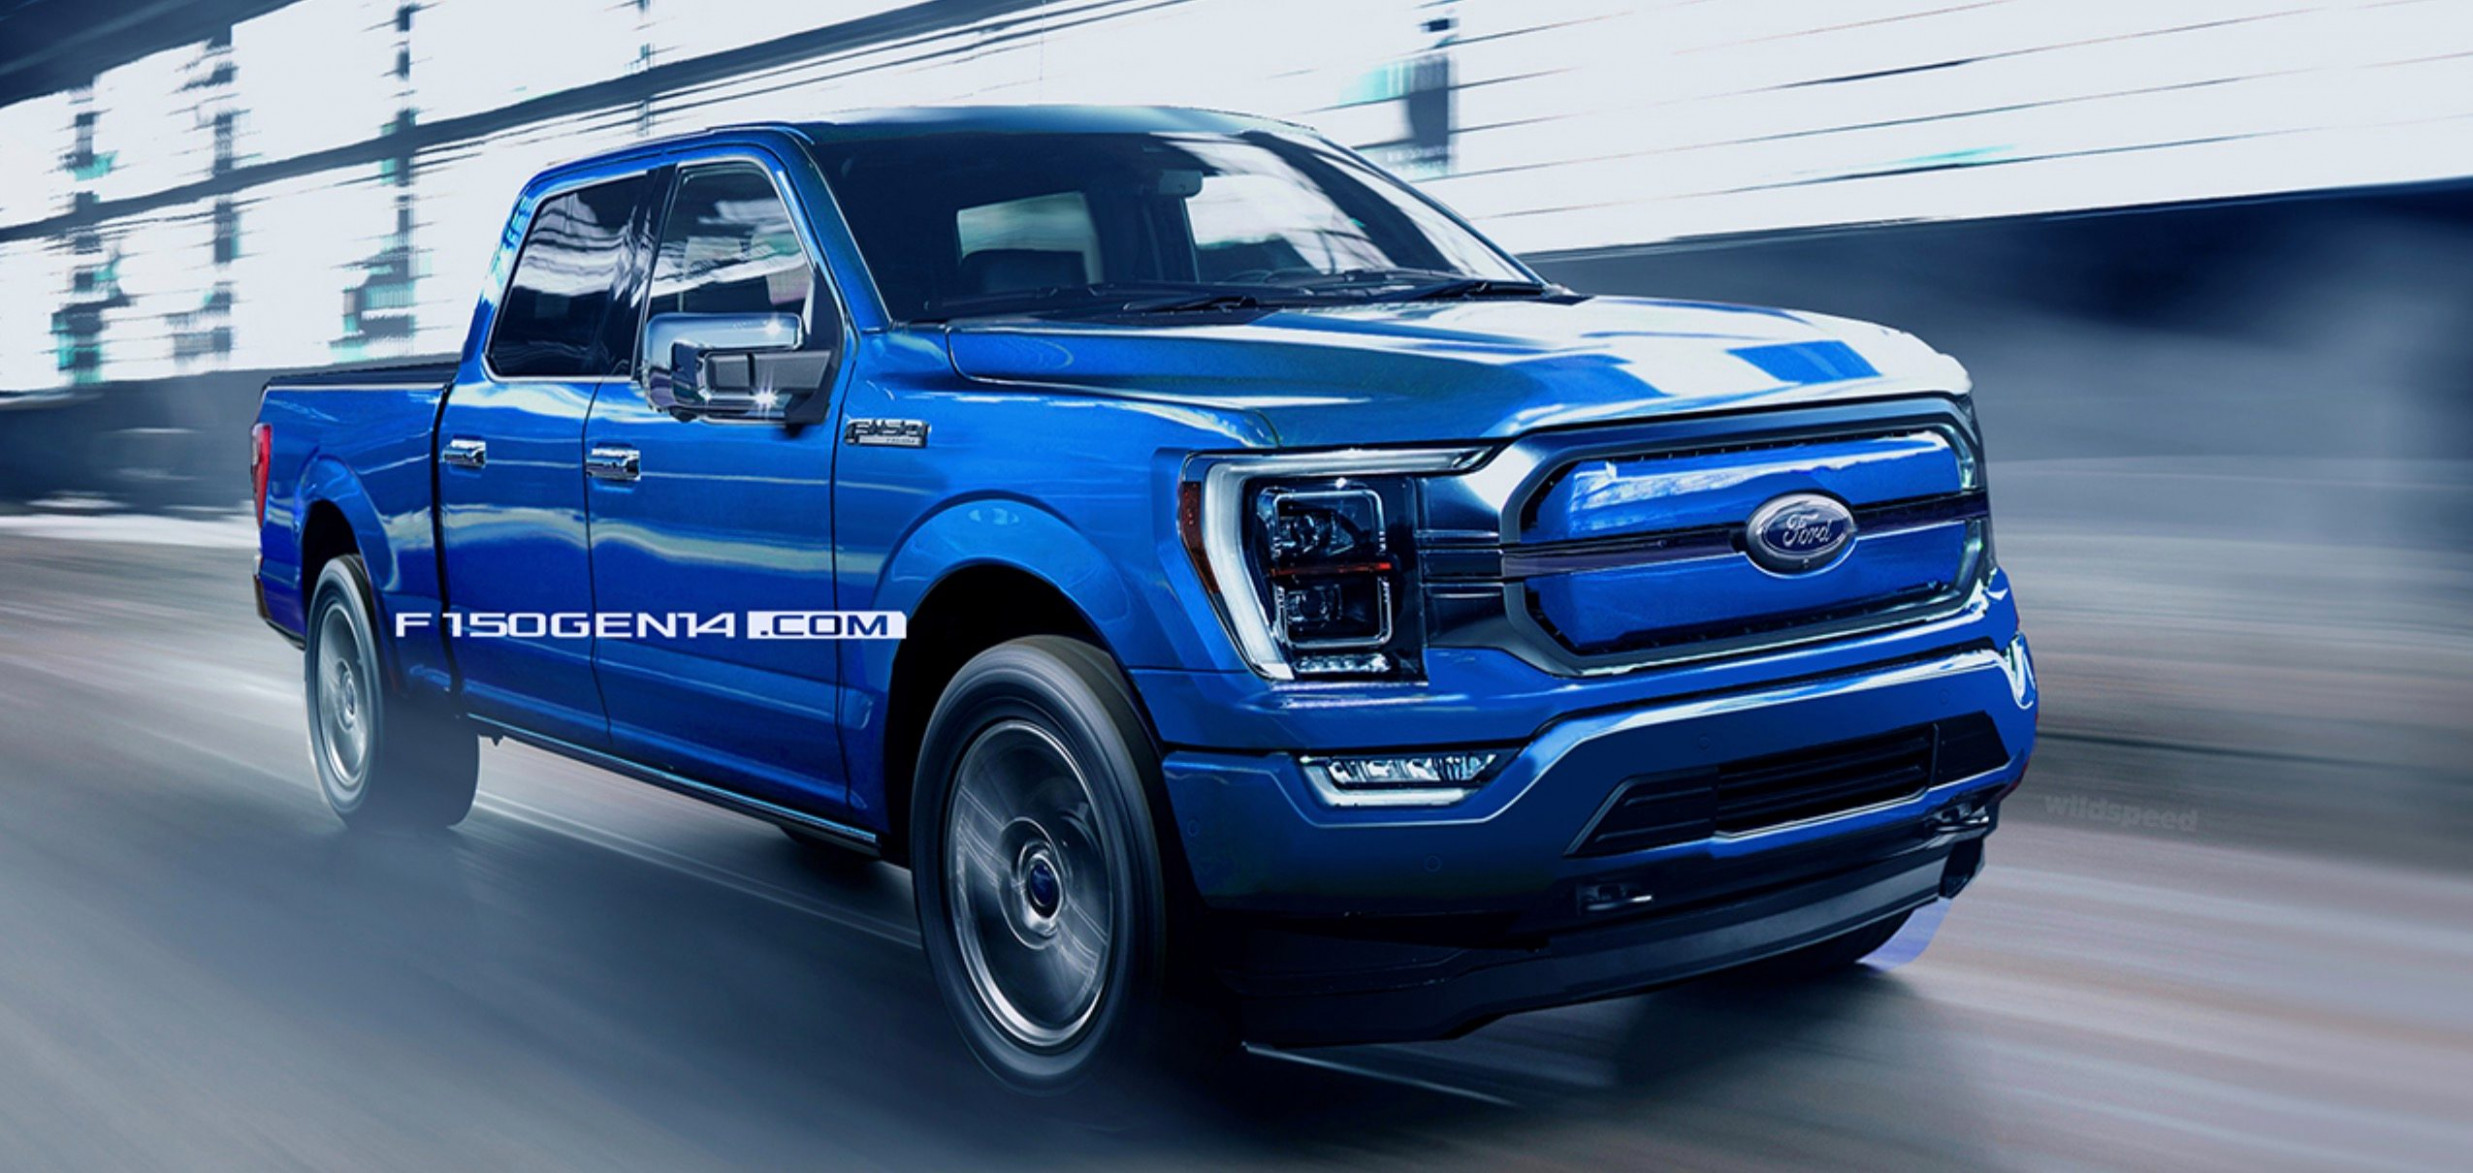 Redesign and Concept 2022 Ford F100